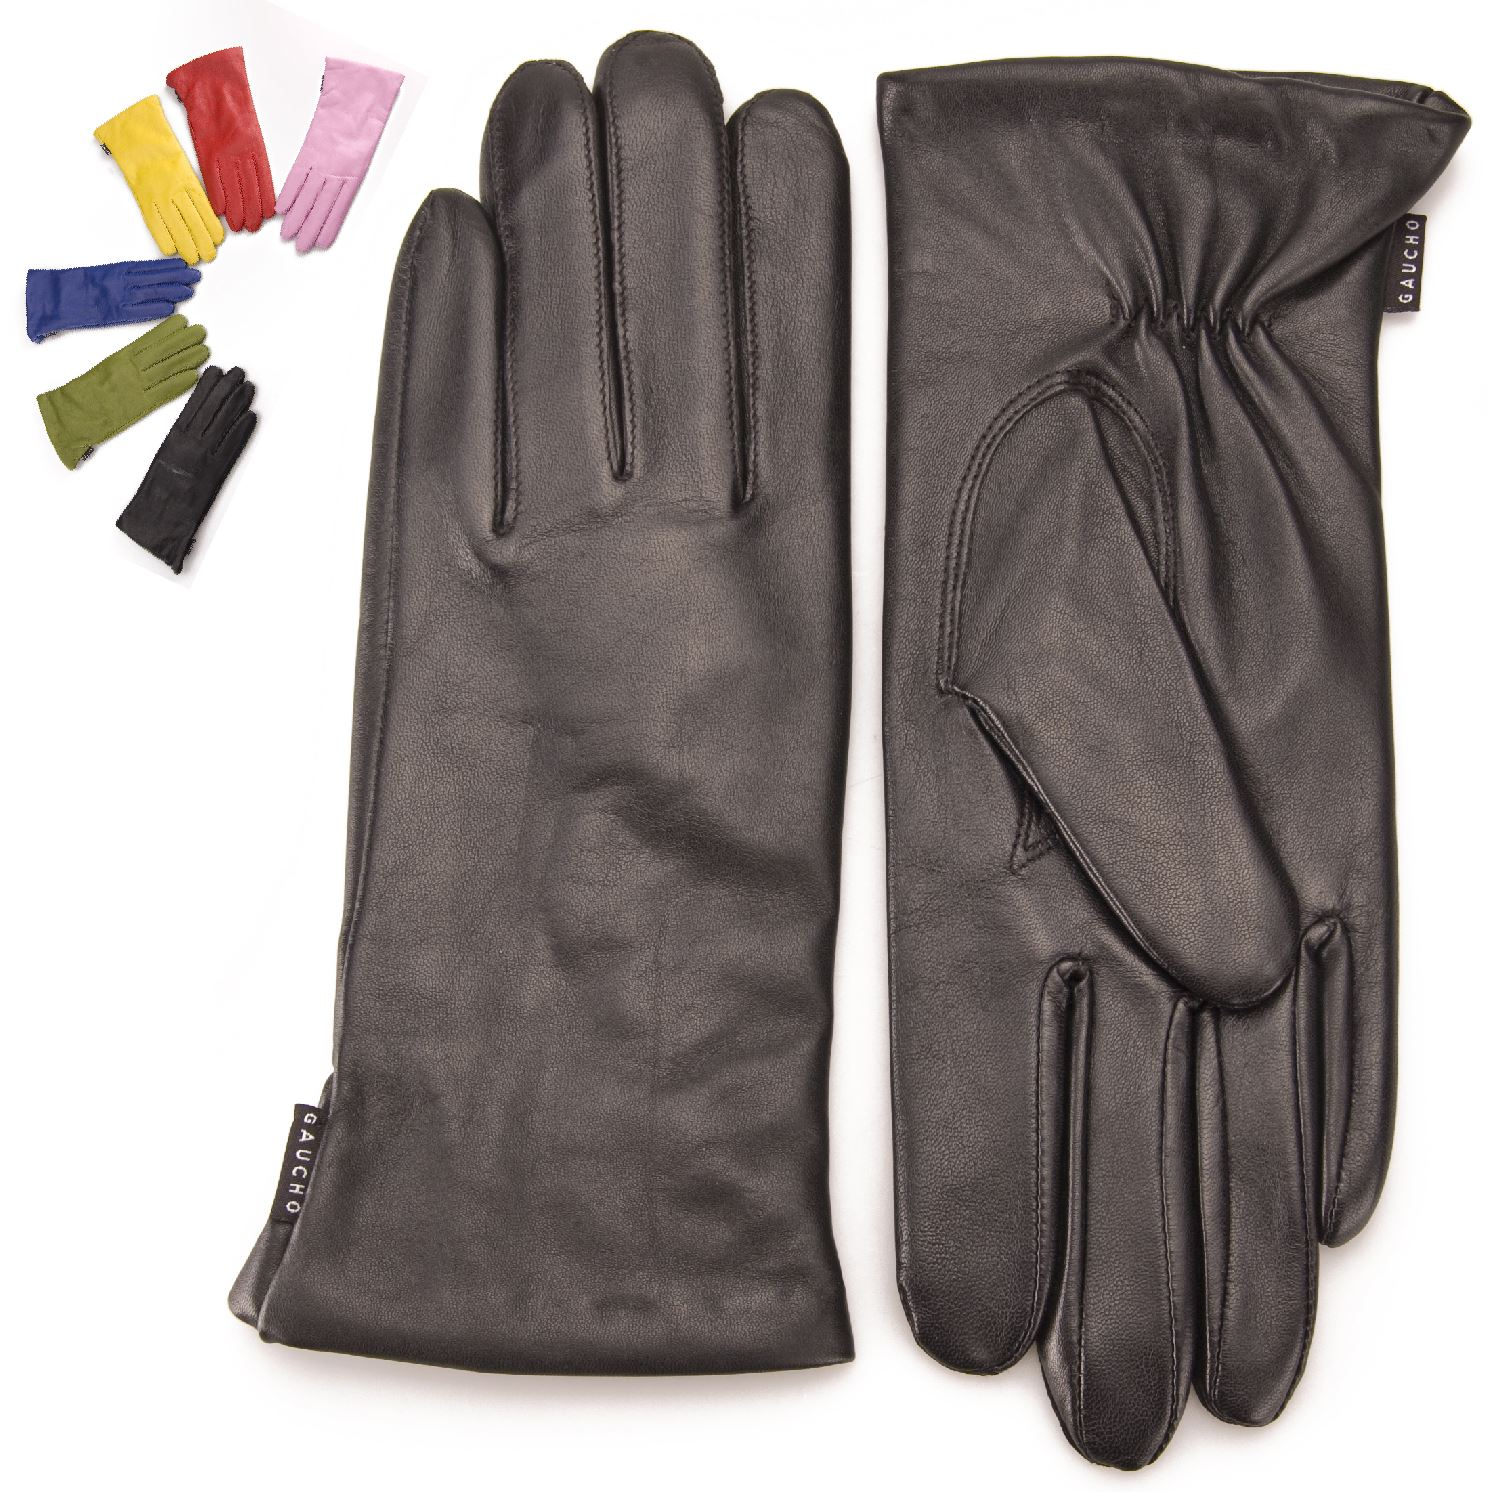 Ladies leather gloves wool lined -  Gaucho Premium Womens Wool Lined Genuine Soft Leather Gloves